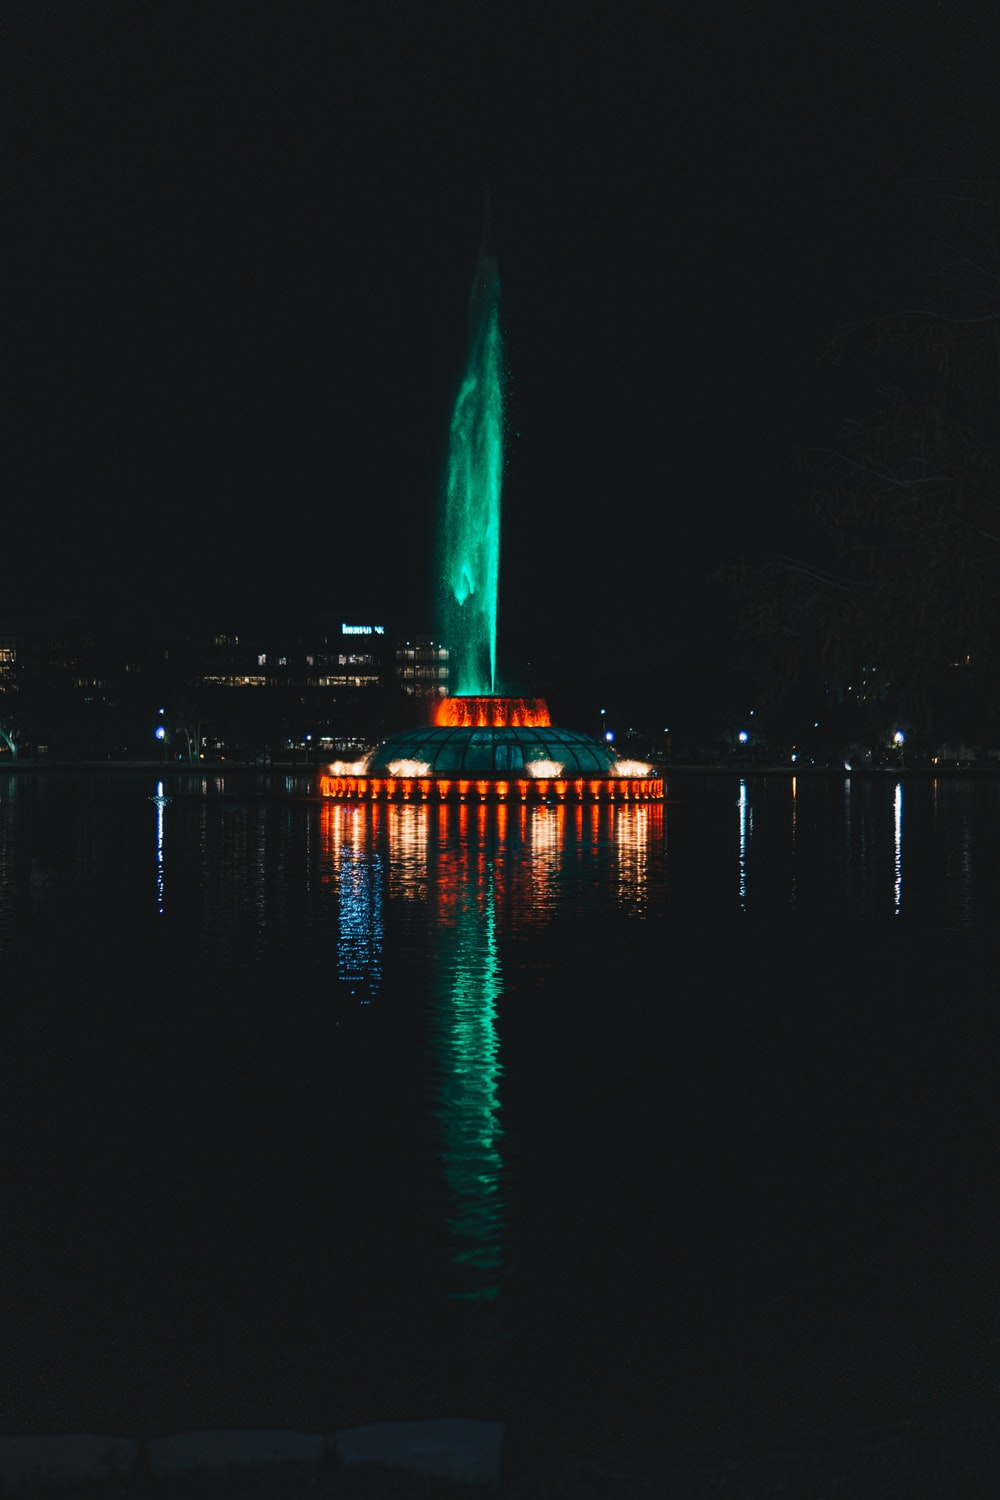 lighted fountain during nighttime